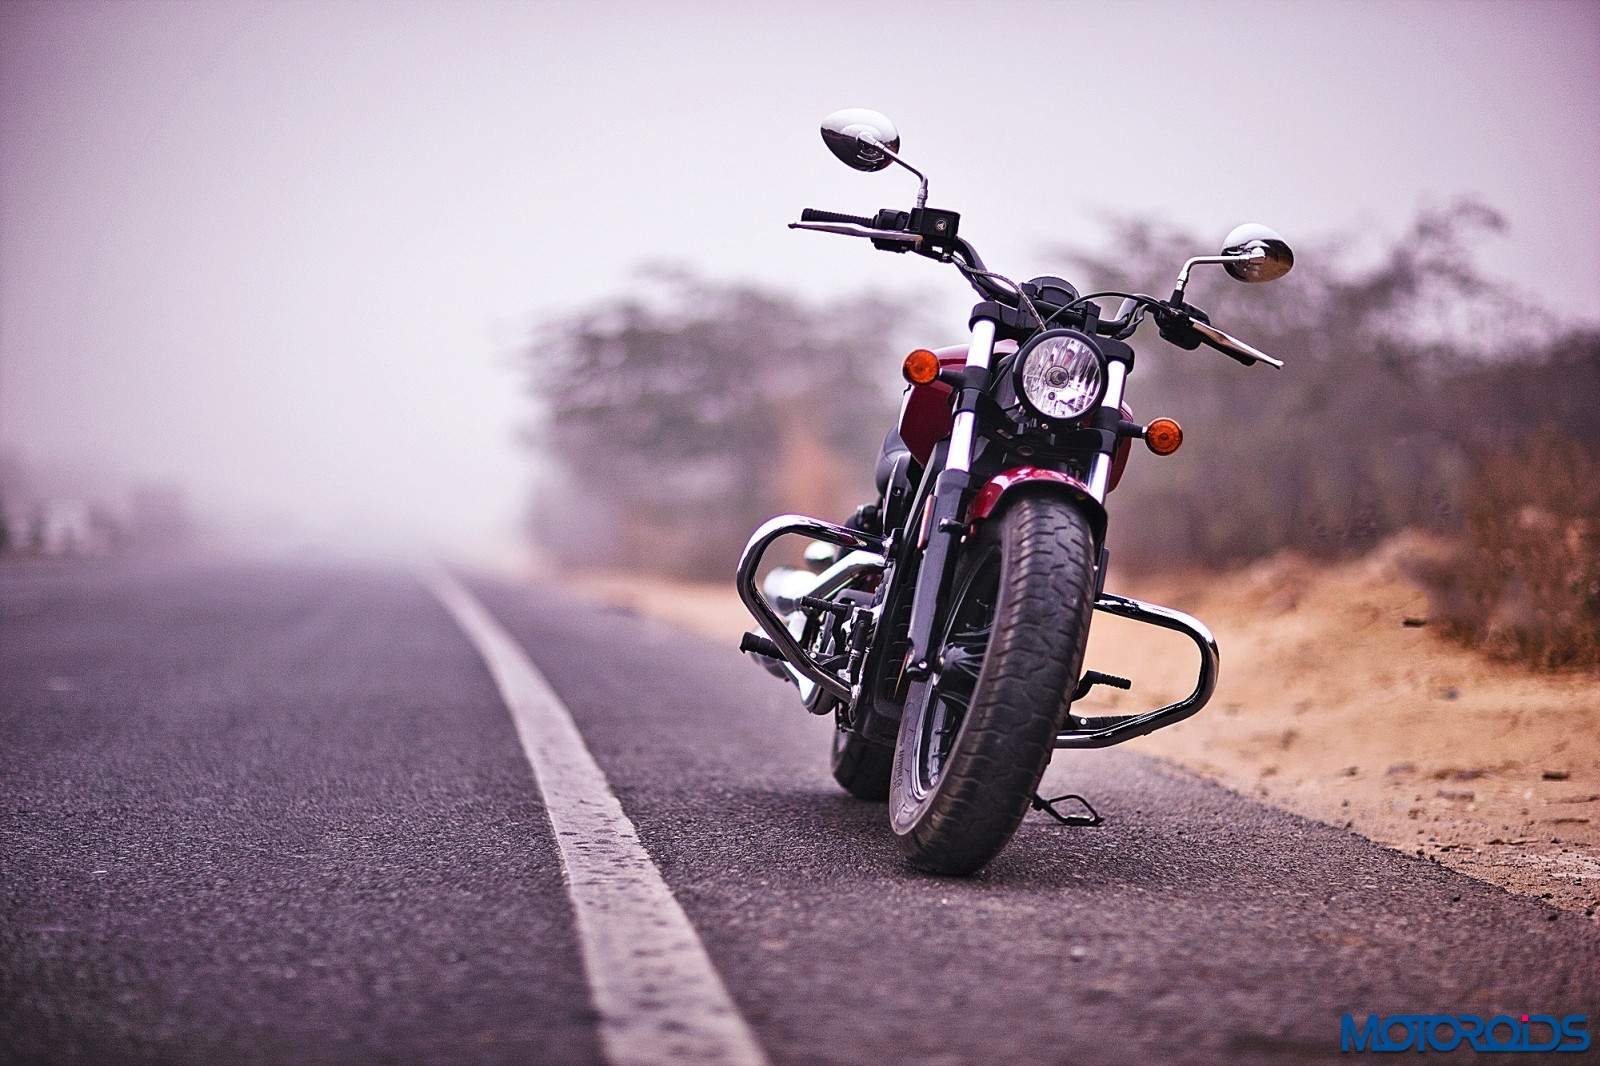 Indian-Scout-Sixty-Review-Still-Shots-6